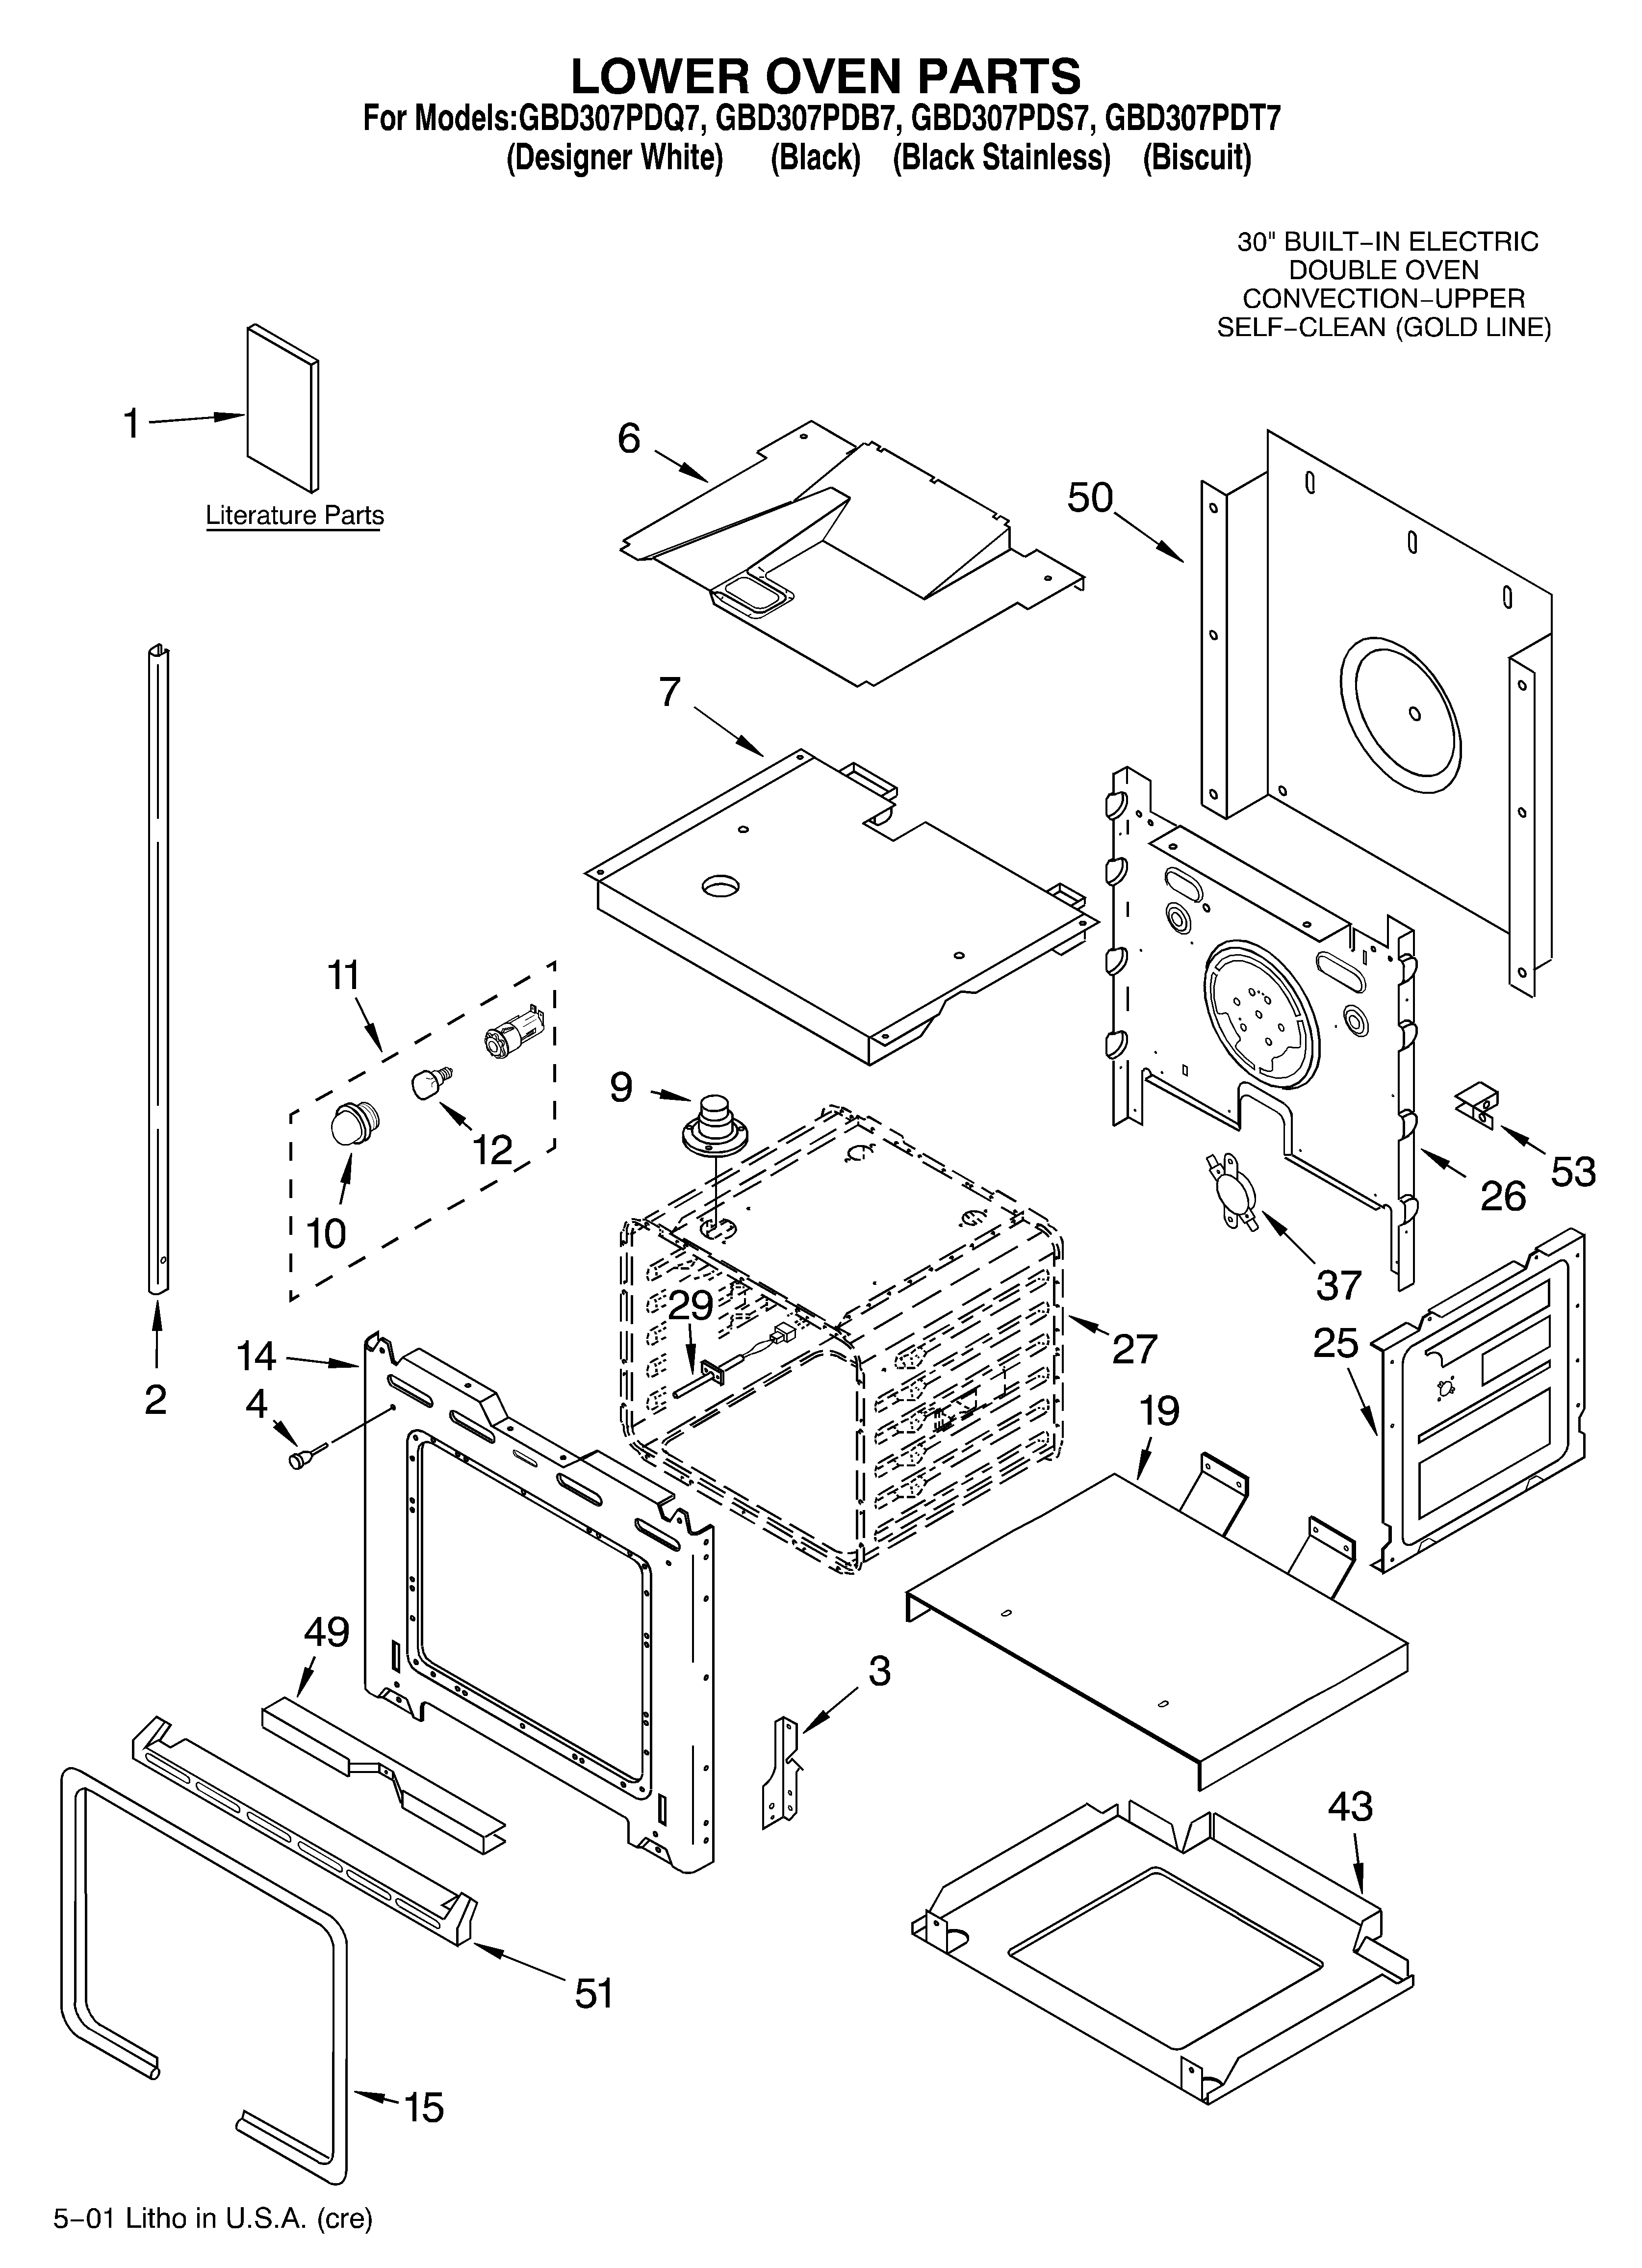 GBD307PDT7 Built-In Electric Oven Lower oven/literature Parts diagram